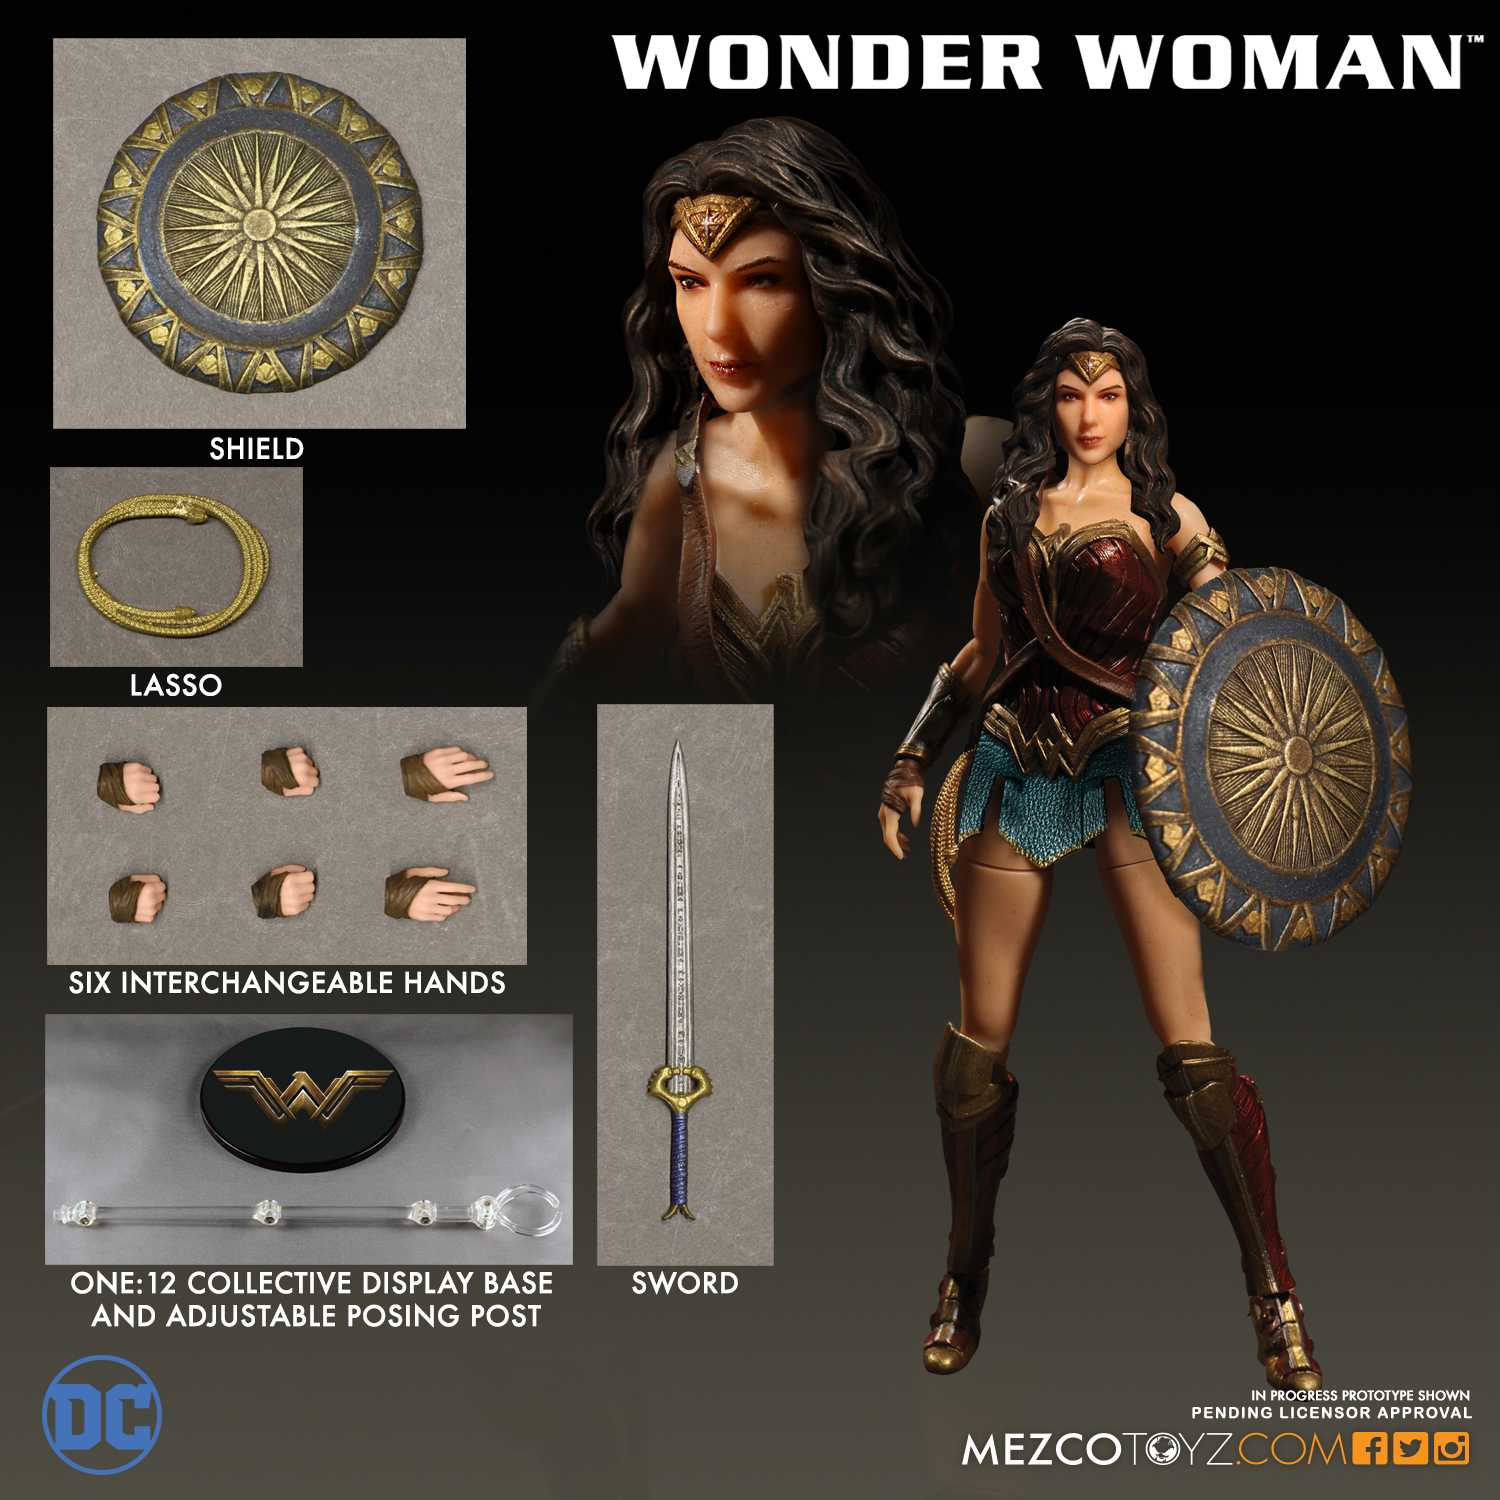 Mezco 2017 One:12 Wonder Woman